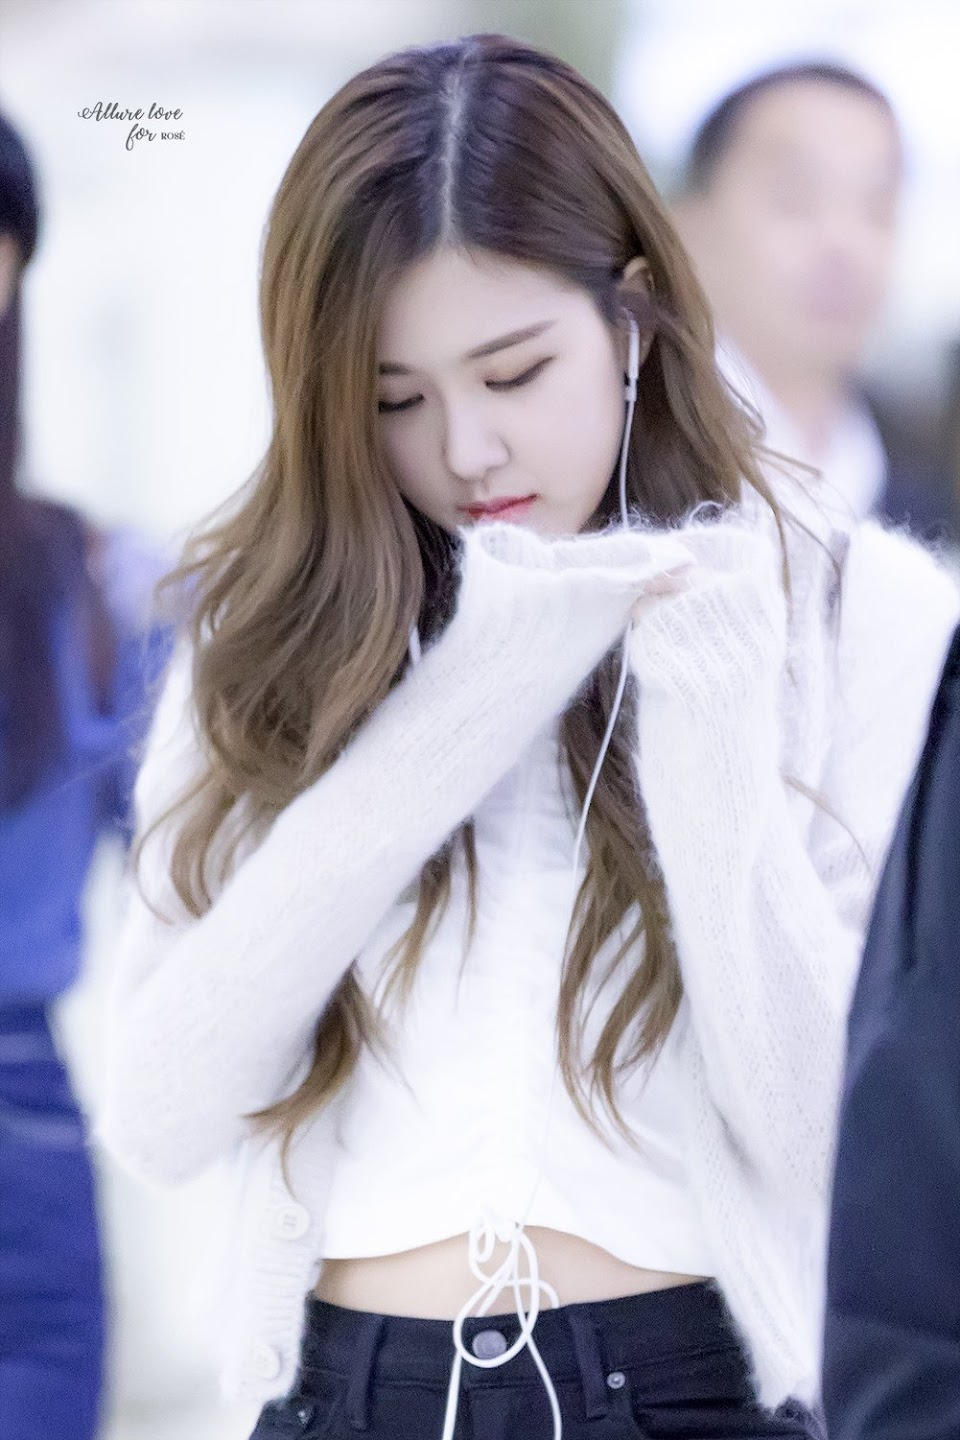 blackpink-rose-airport-fashion-22-april-2018-hq